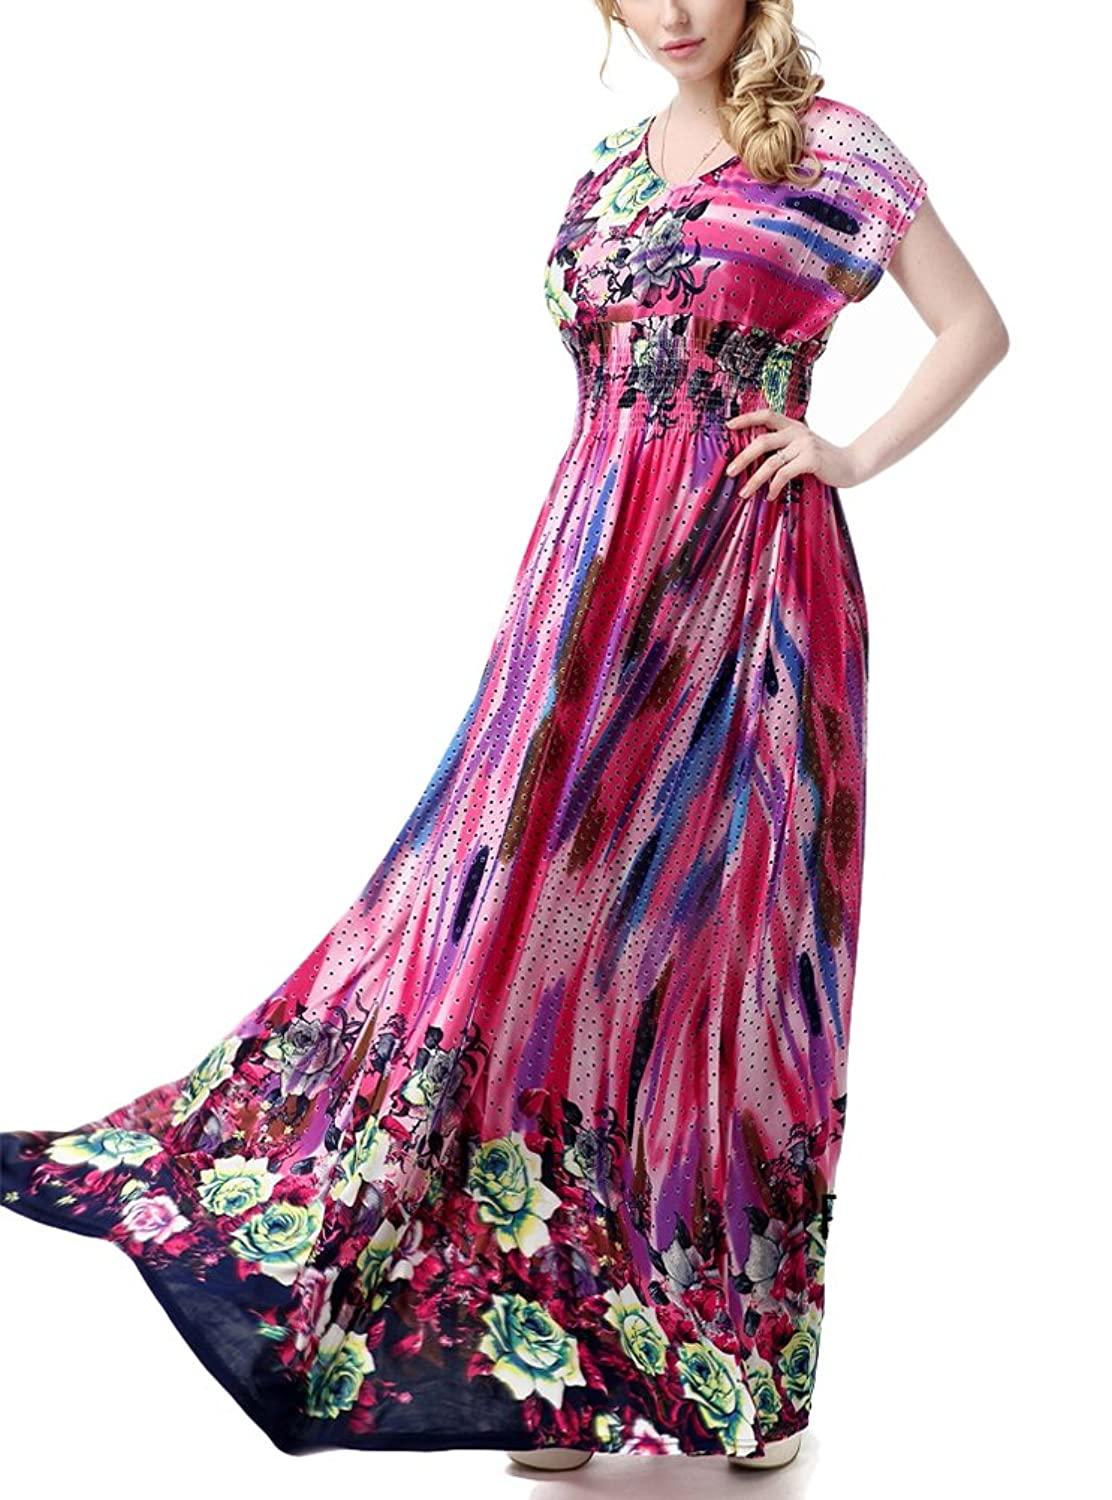 Brinny Damen Sommerkleid Elegante Cocktail Party Floral Kleider Maxi ...